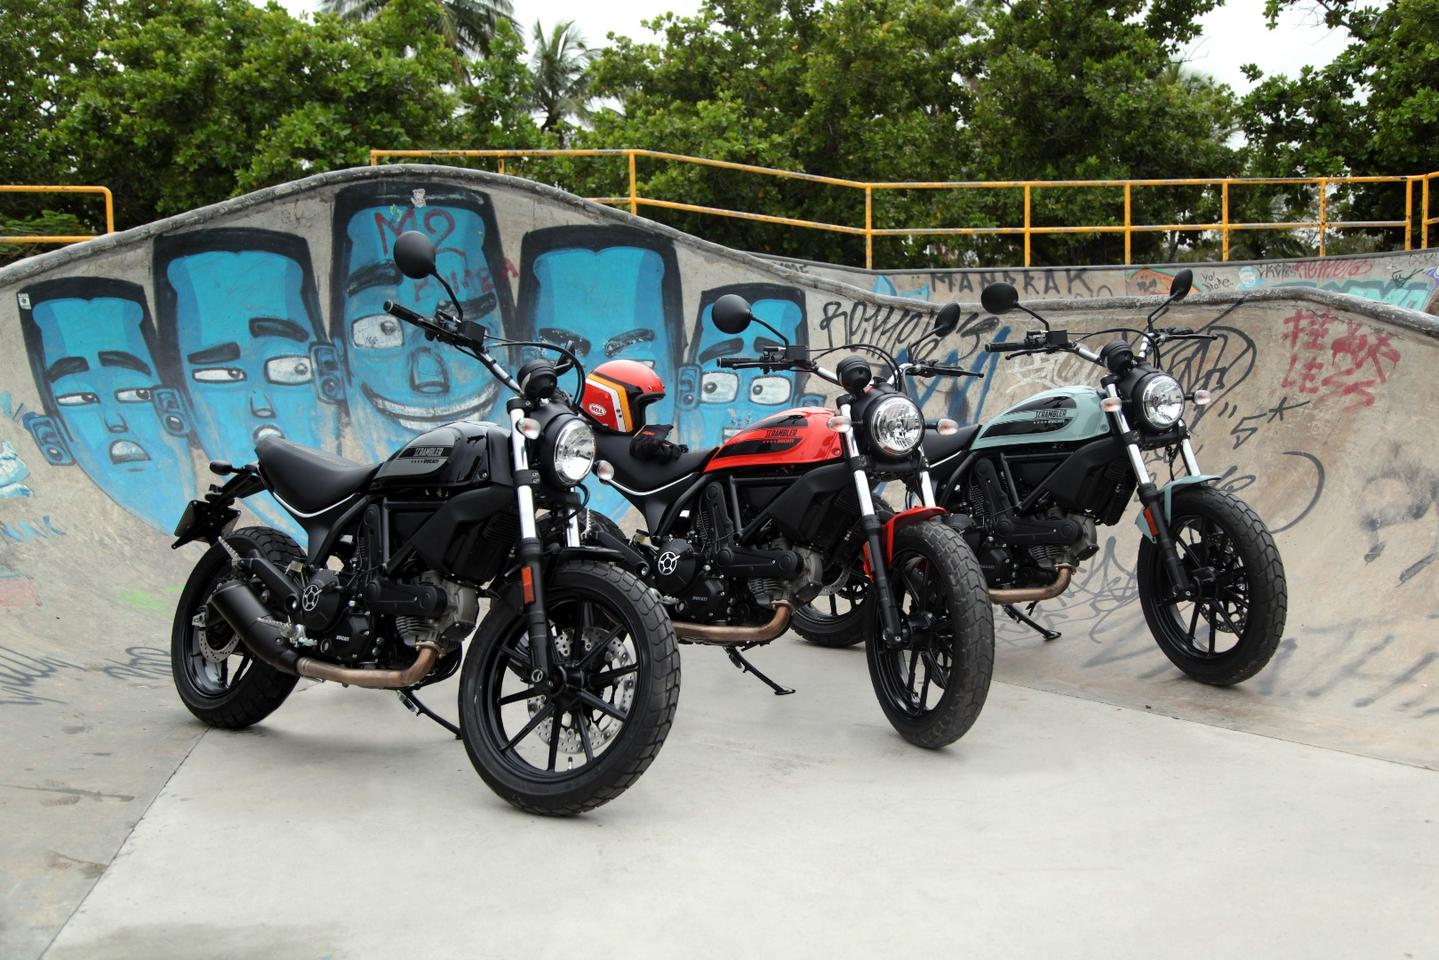 The Ducati Scrambler Sixty2 is offered in three colors